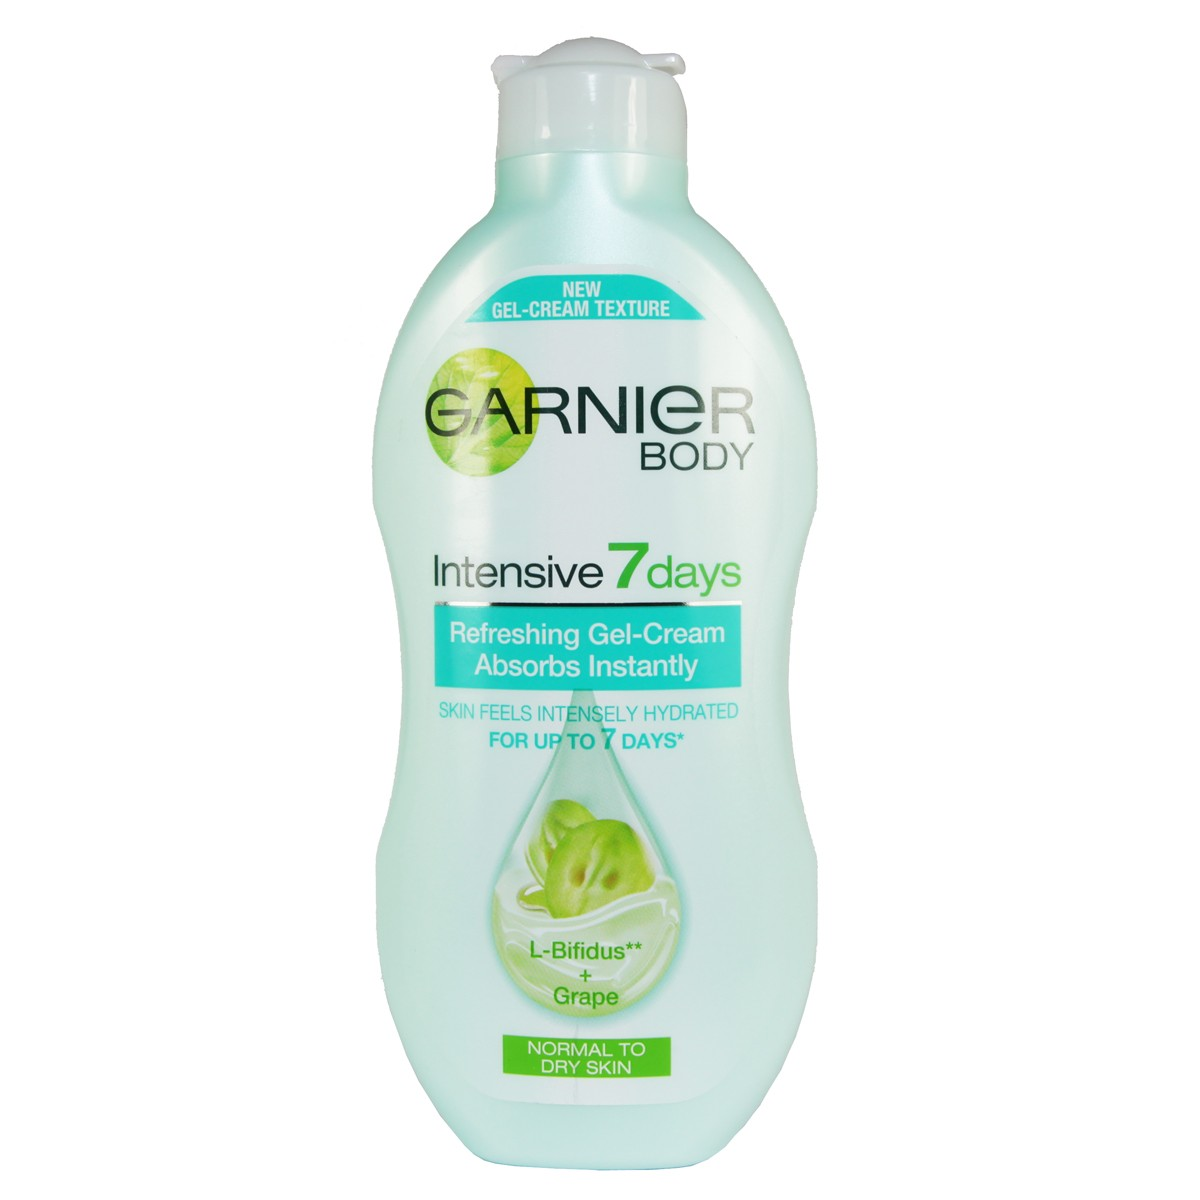 Garnier Intensives 7 Days Refreshing Gel-Cream with L-Bifidus & Grape (Normal to Dry skin)